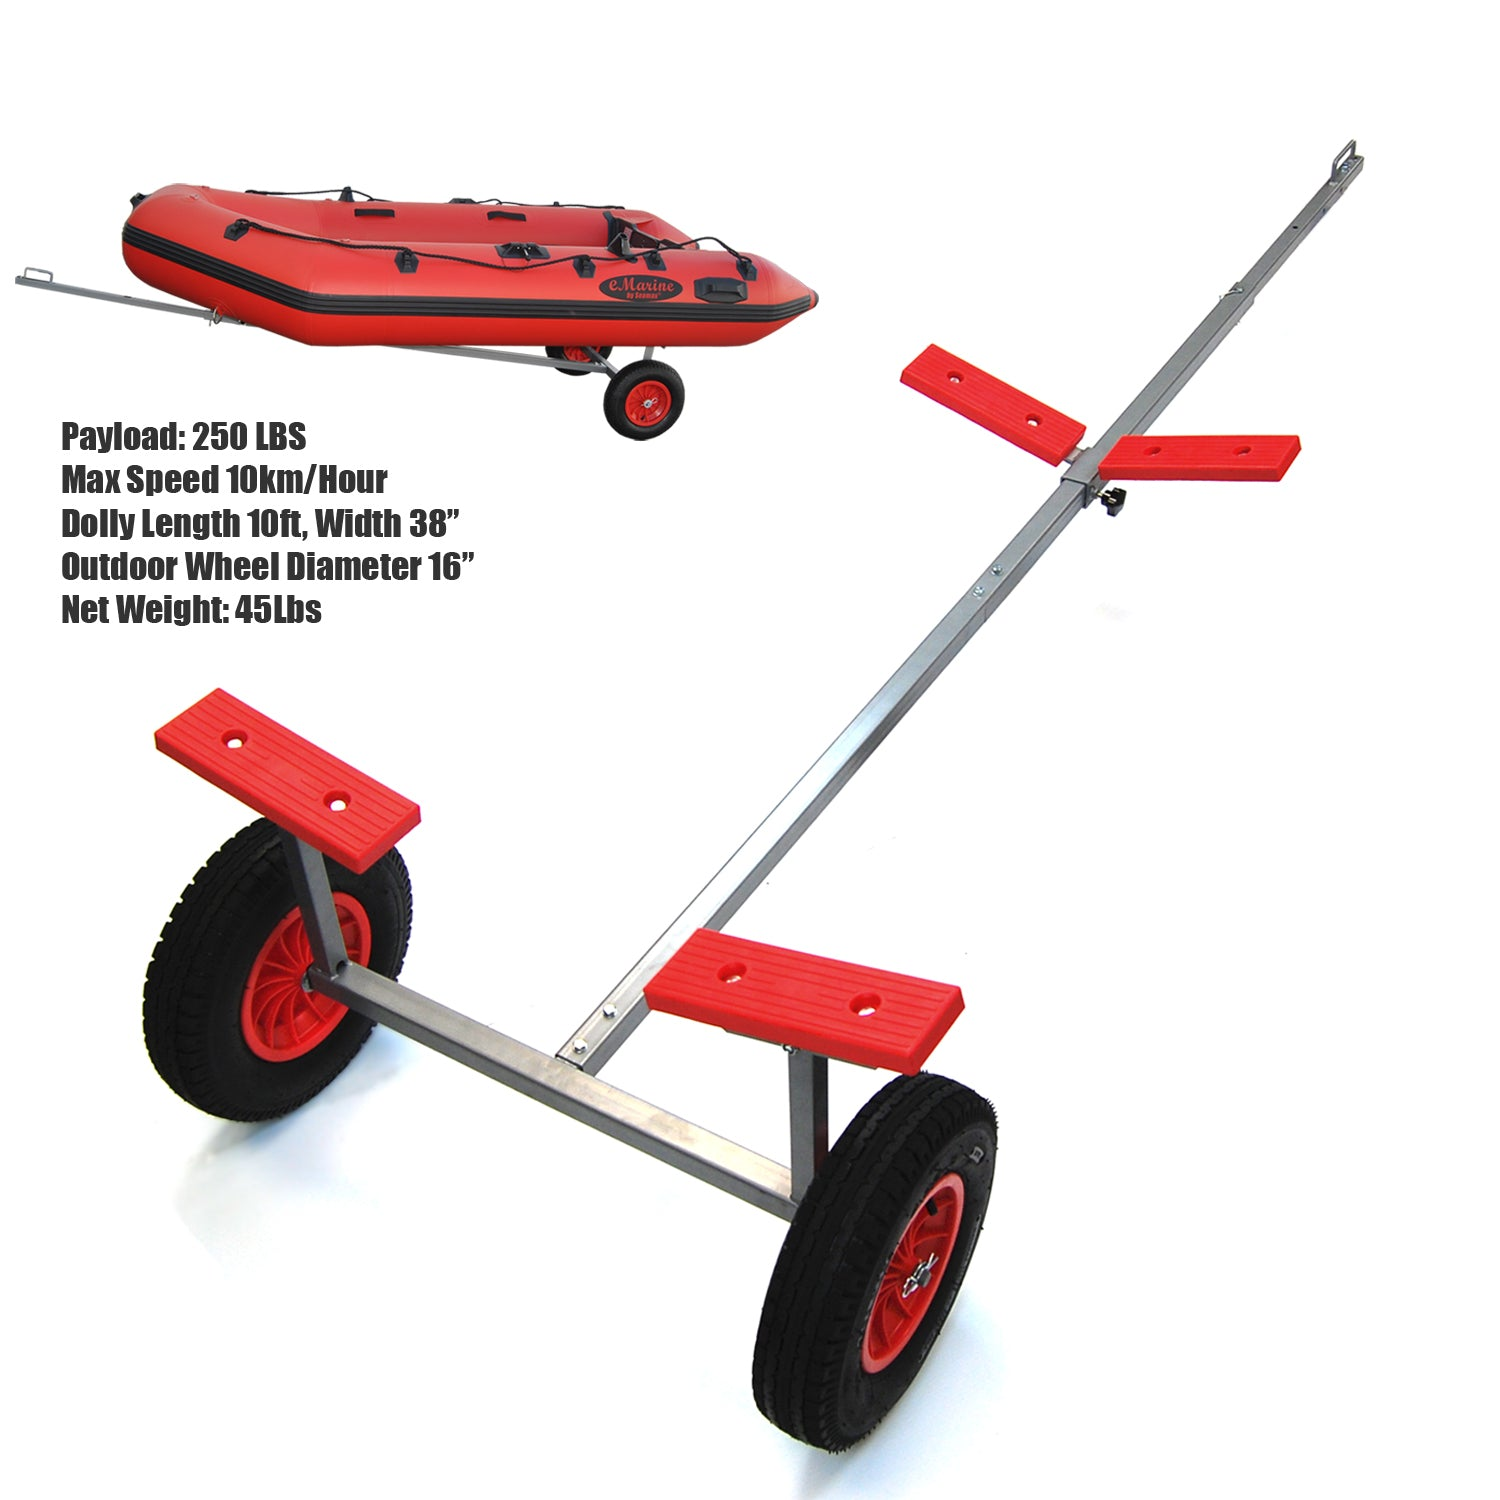 seamax portable boat carry launch hand dolly set with 16